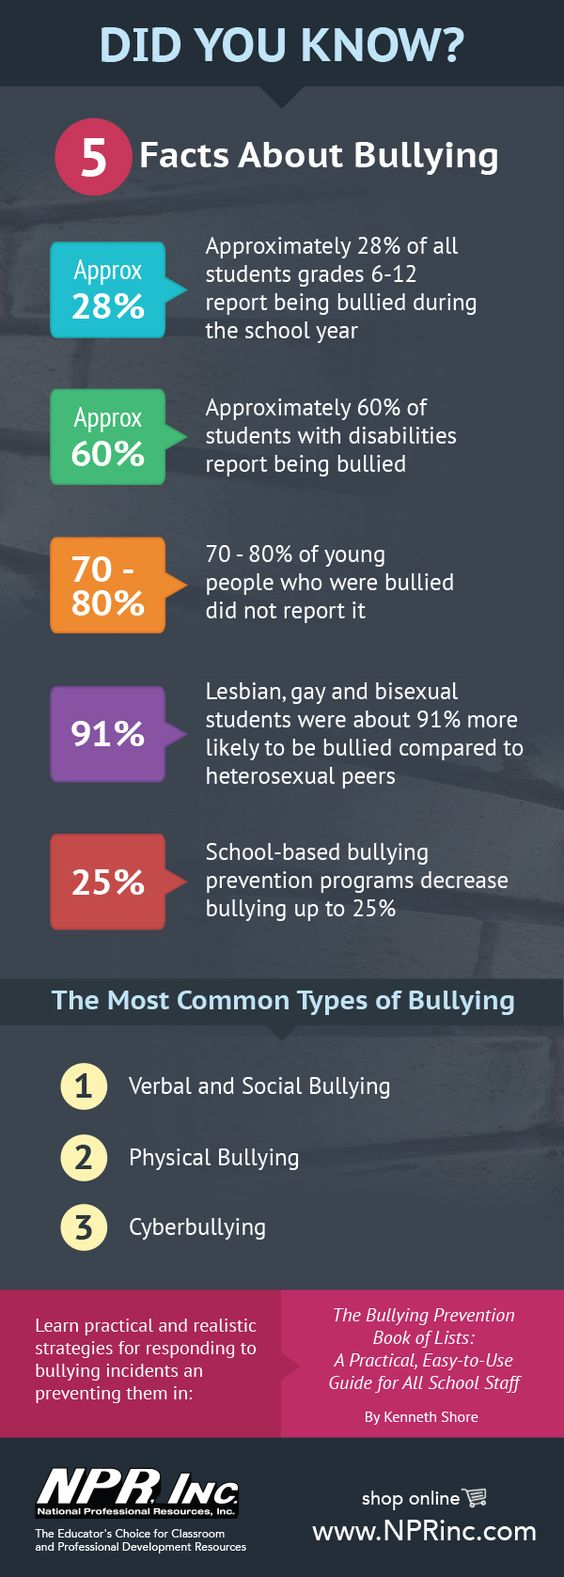 Facts about bullying infographic.